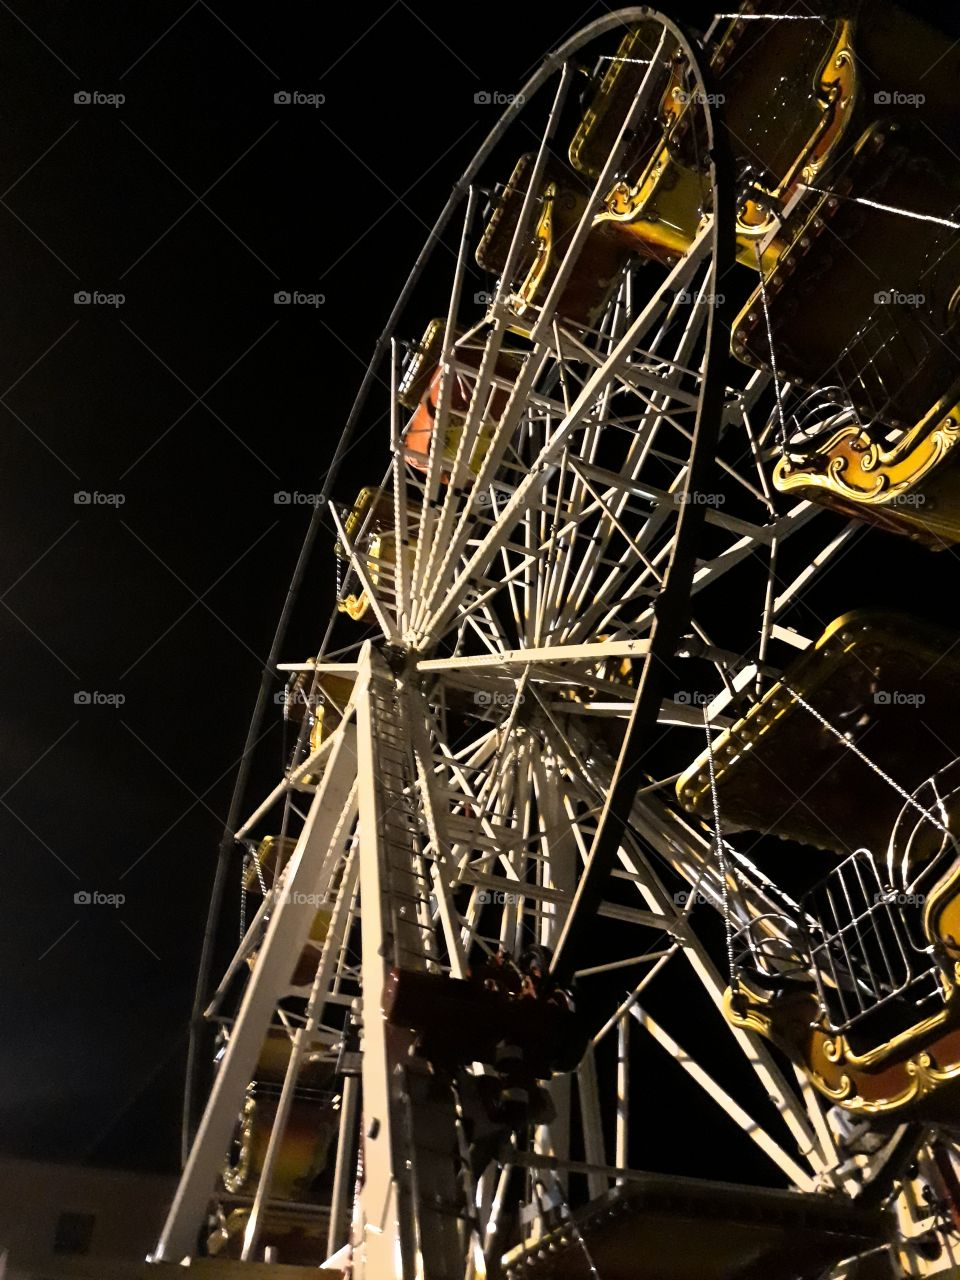 A little metal ferris  wheel photographed from below at night with a clear sky. The colours and the Shape of the Wheels recalls childhood Memories